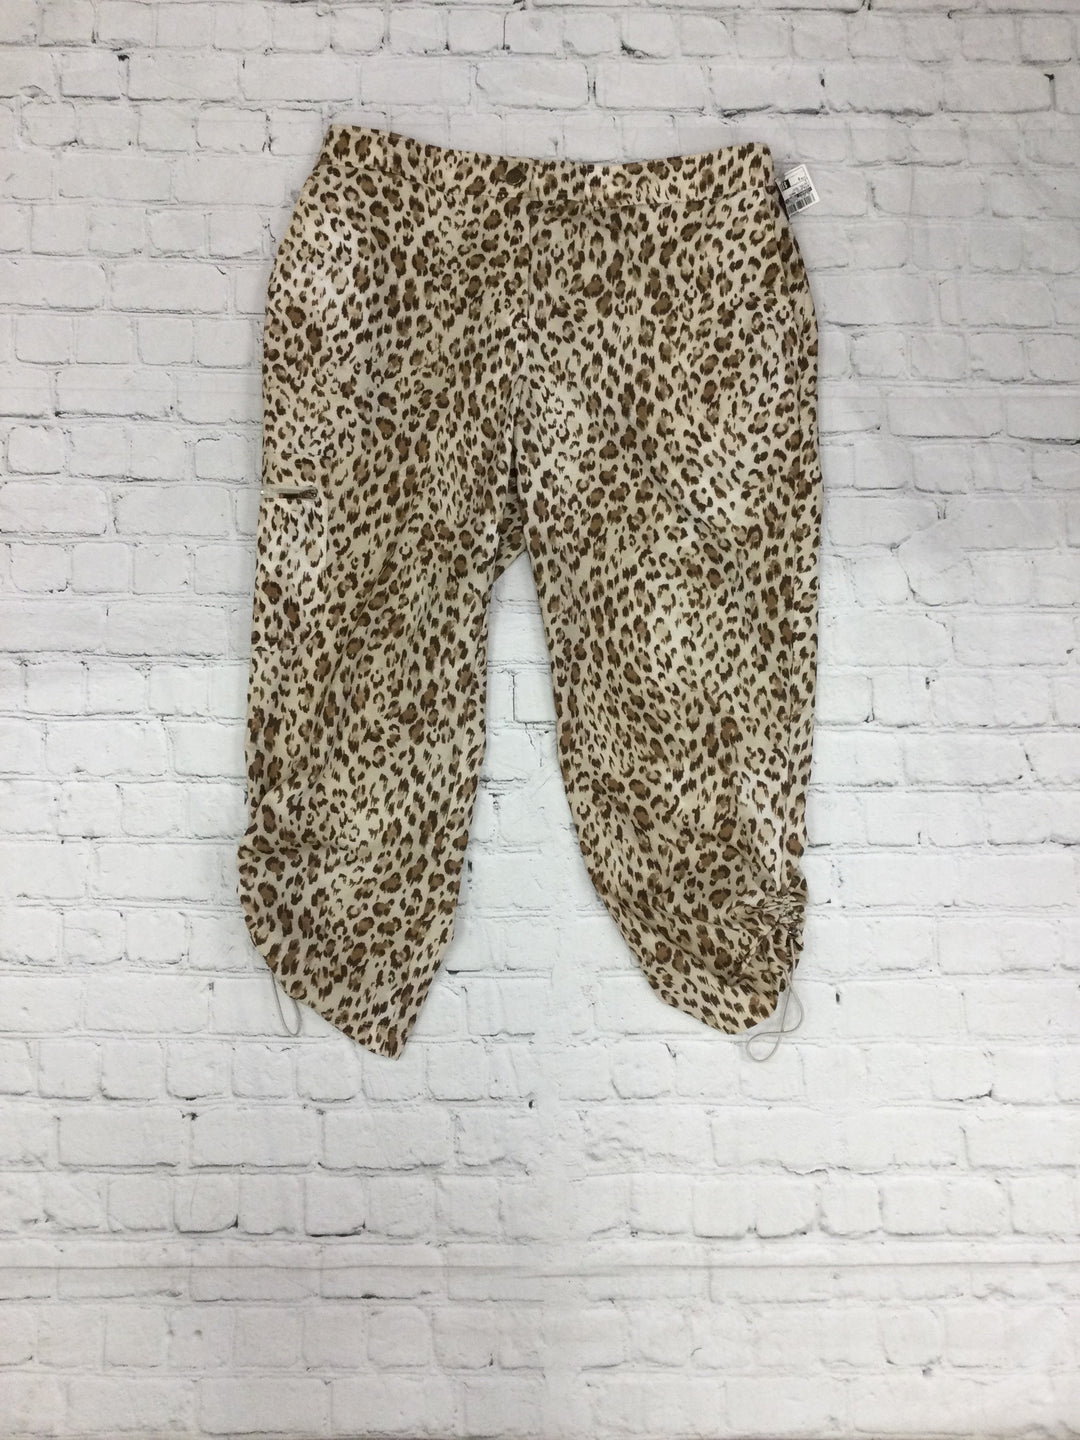 Primary Photo - brand: zenergy by chicos , style: athletic pants , color: animal print , size: 0 , sku: 125-4870-718